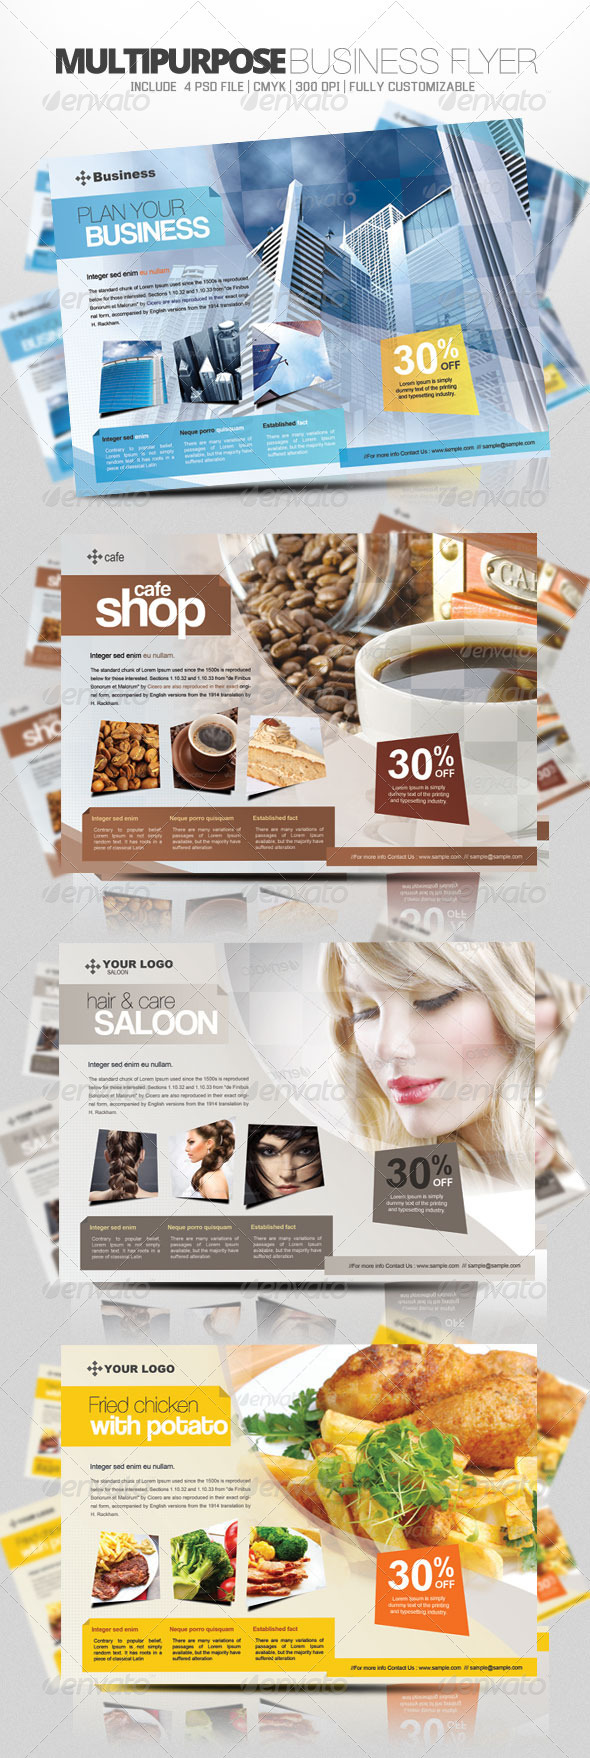 GraphicRiver Multipurpose Business Flyer 3305310